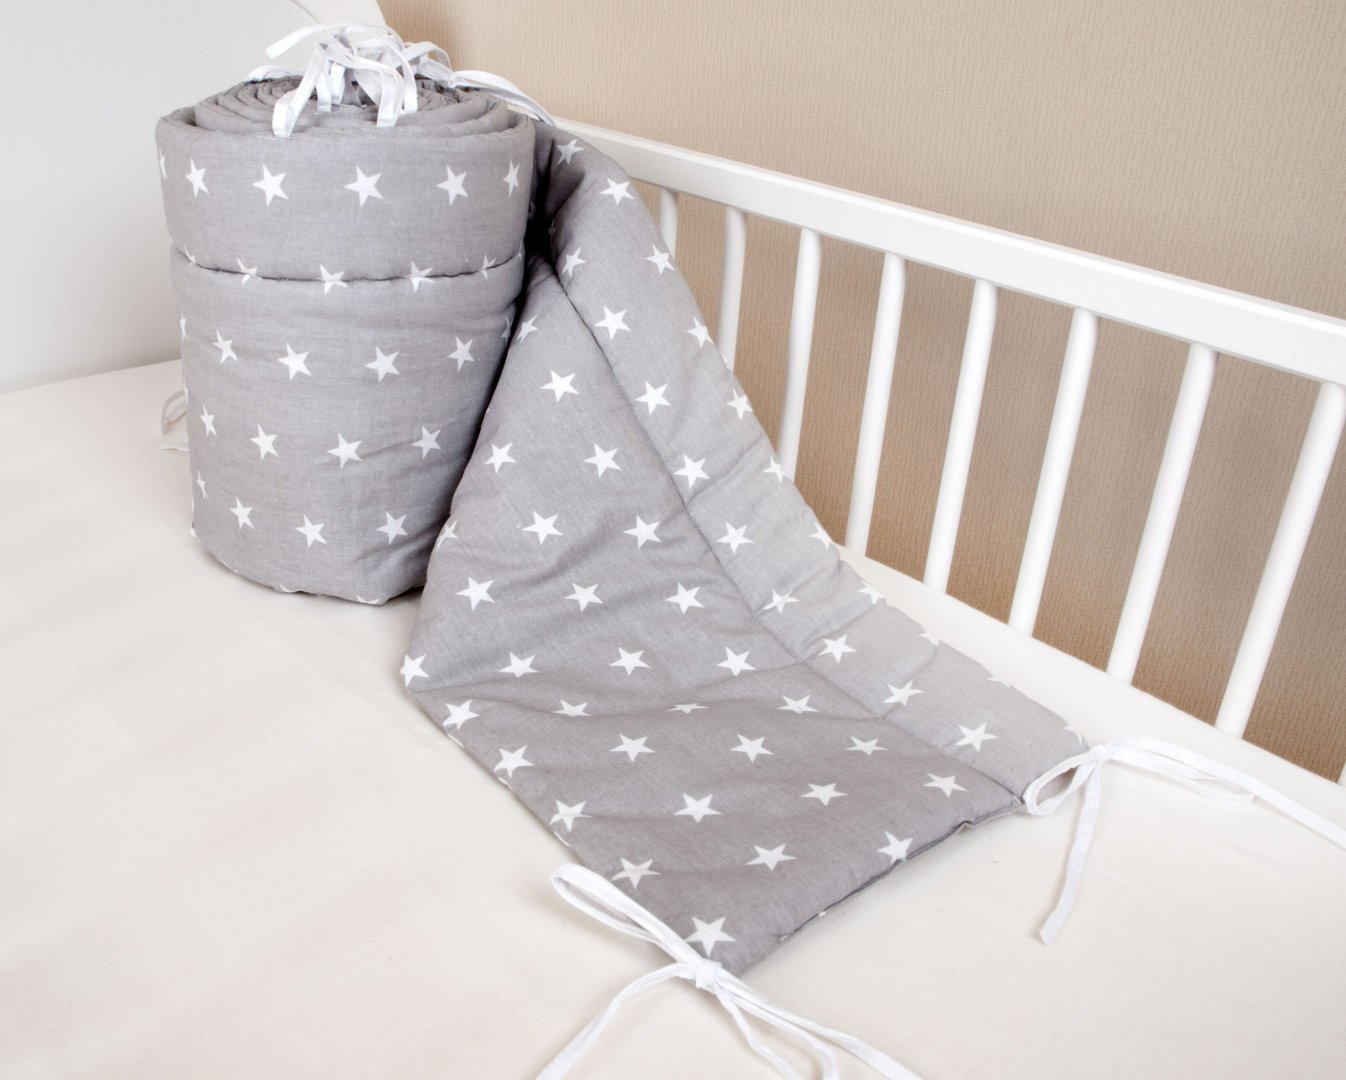 tour de lit bébé 360 Amilian® Baby Cot Bumper Wrap Around Protection For Baby's Bed  tour de lit bébé 360